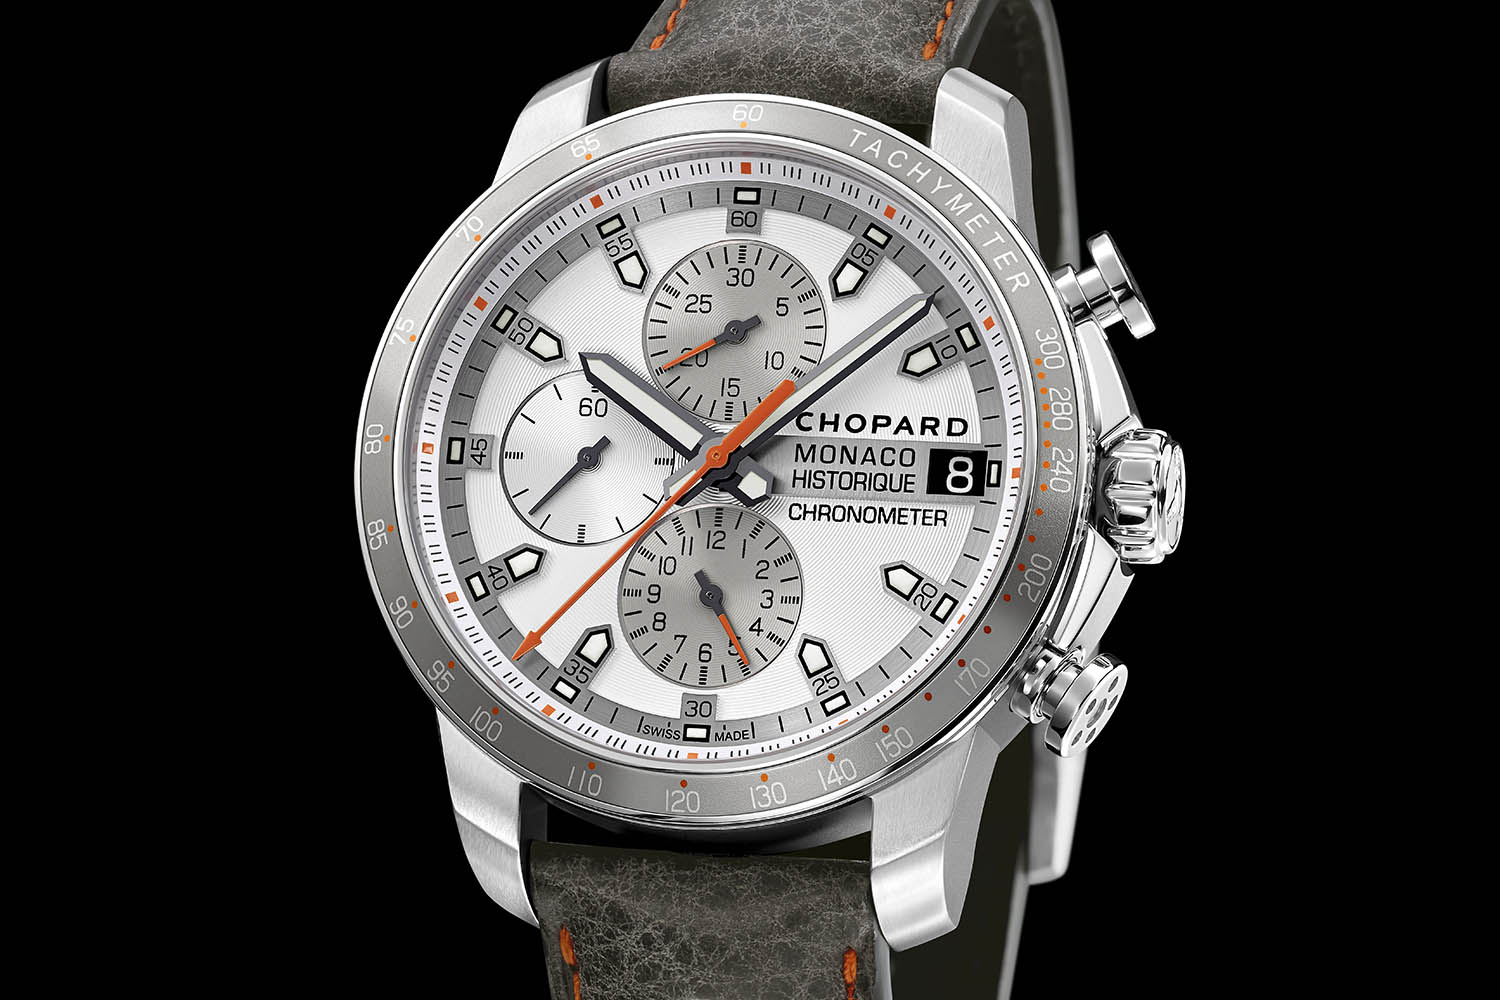 Chopard Grand Prix de Monaco Historique 2016 Race Edition Chronographs - 3